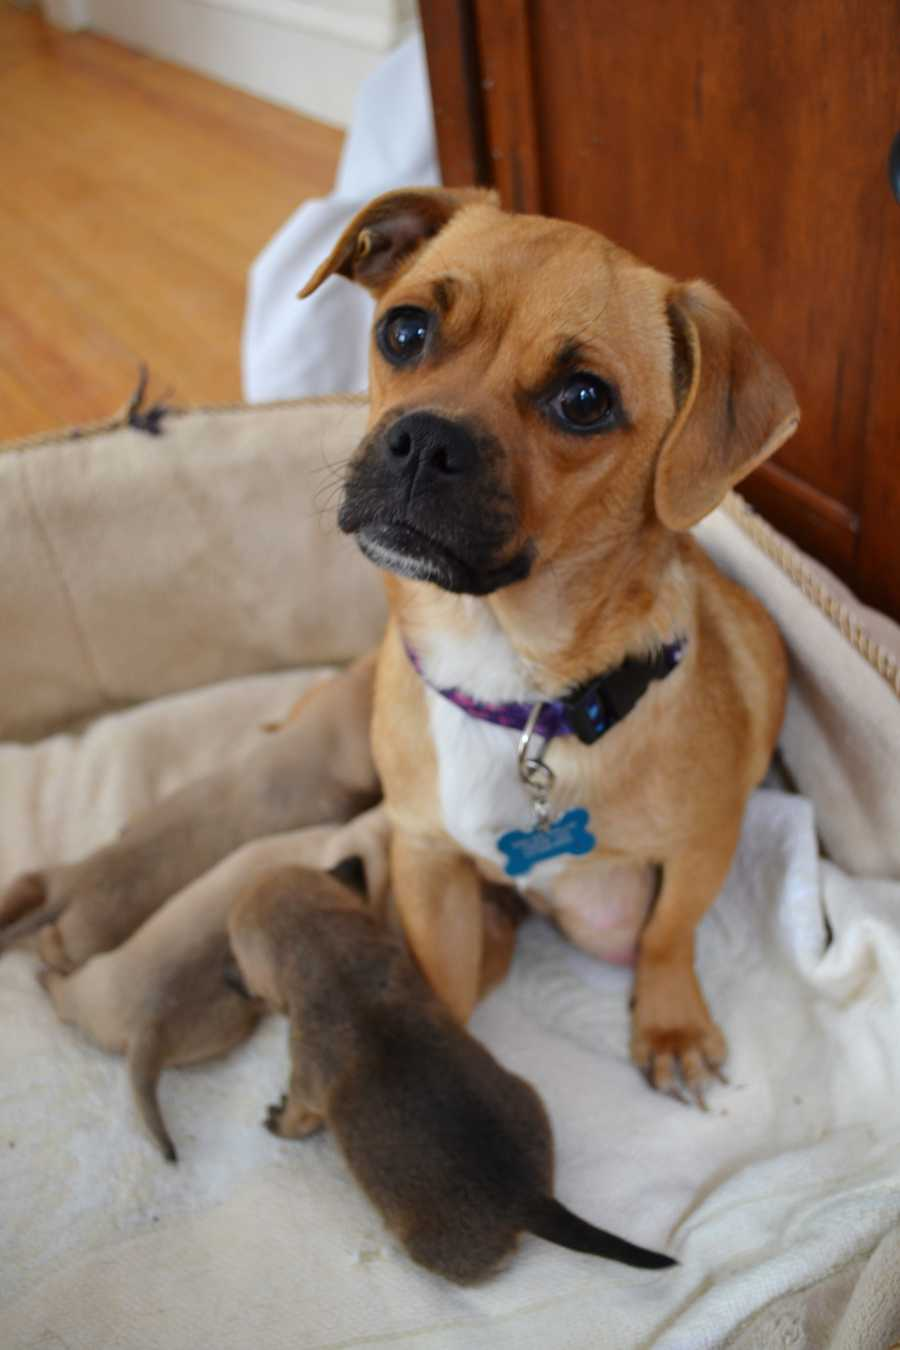 Harp is a 2 year old puggle mix. She recently gave birth to 7 babies and will soon be ready for her forever home! She's an attentive and loving girl that loves kids. MORE